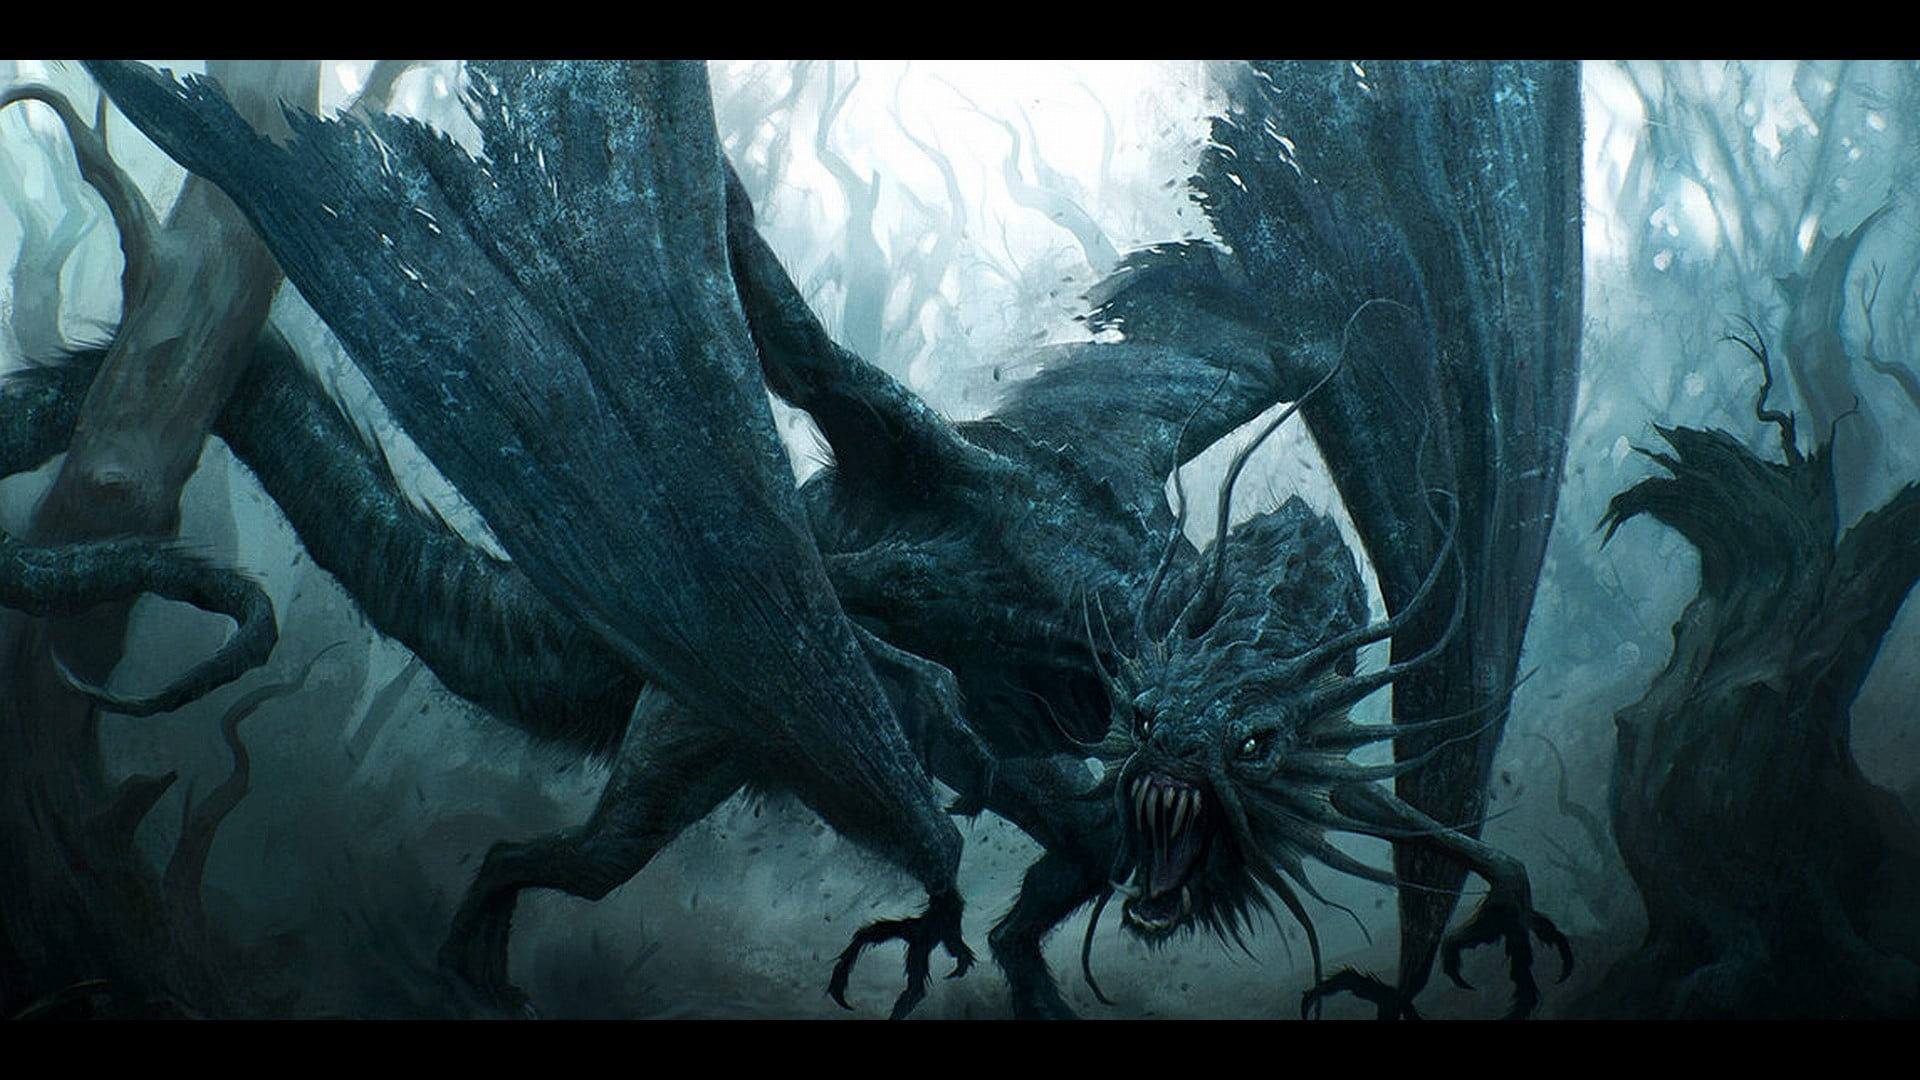 Dragon surrounded by leafless trees digital wallpaper fantasy art 1920x1080